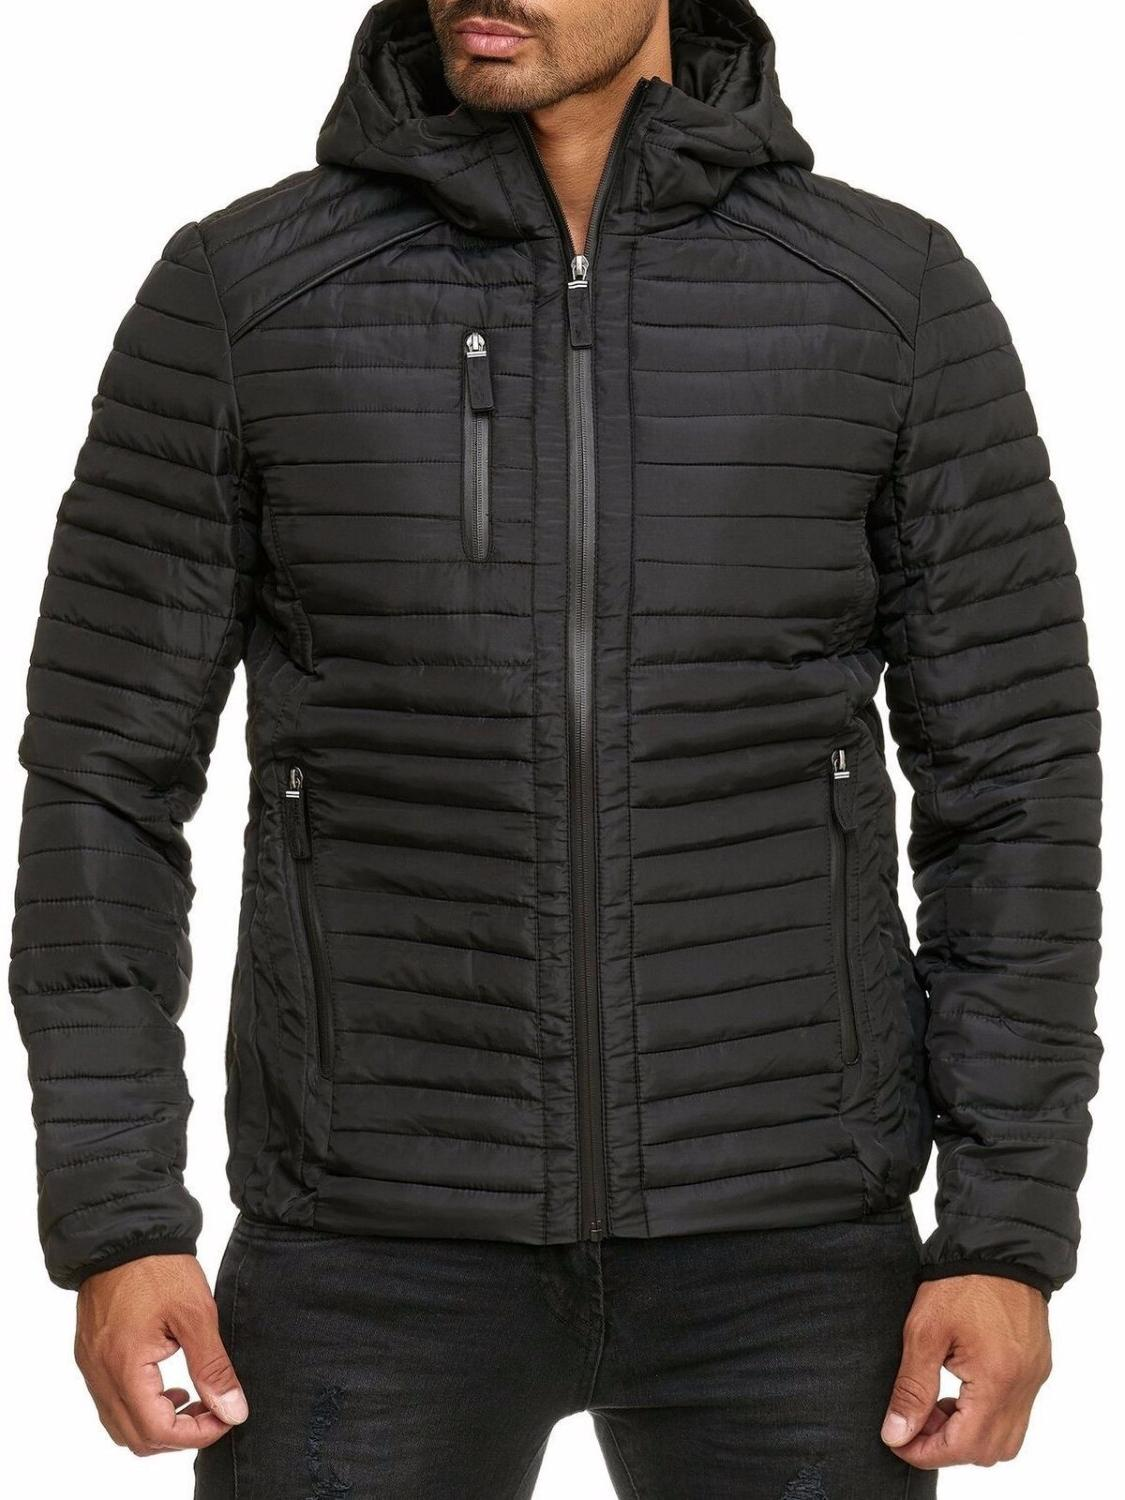 2019 New Down <font><b>Jacket</b></font> <font><b>Coat</b></font> Warm <font><b>Winter</b></font> Down <font><b>Jackets</b></font> Male Sleeve